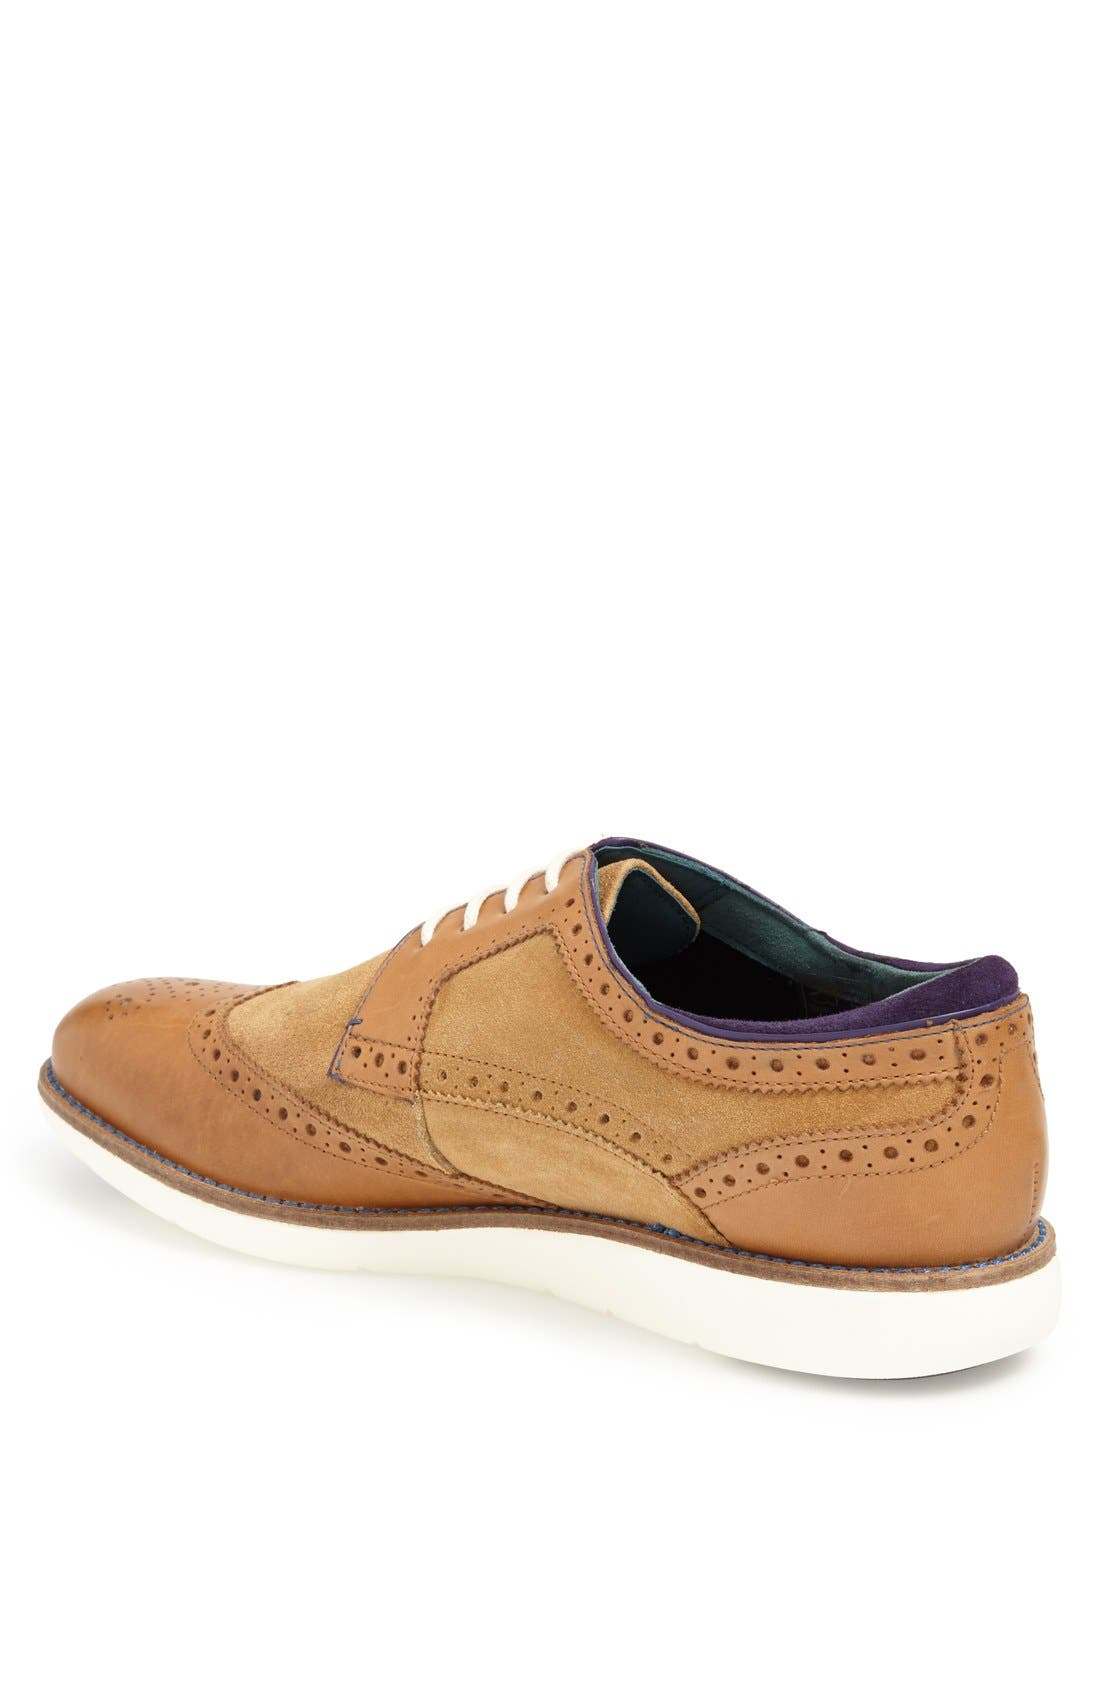 Alternate Image 2  - Ted Baker London 'Treey' Wingtip